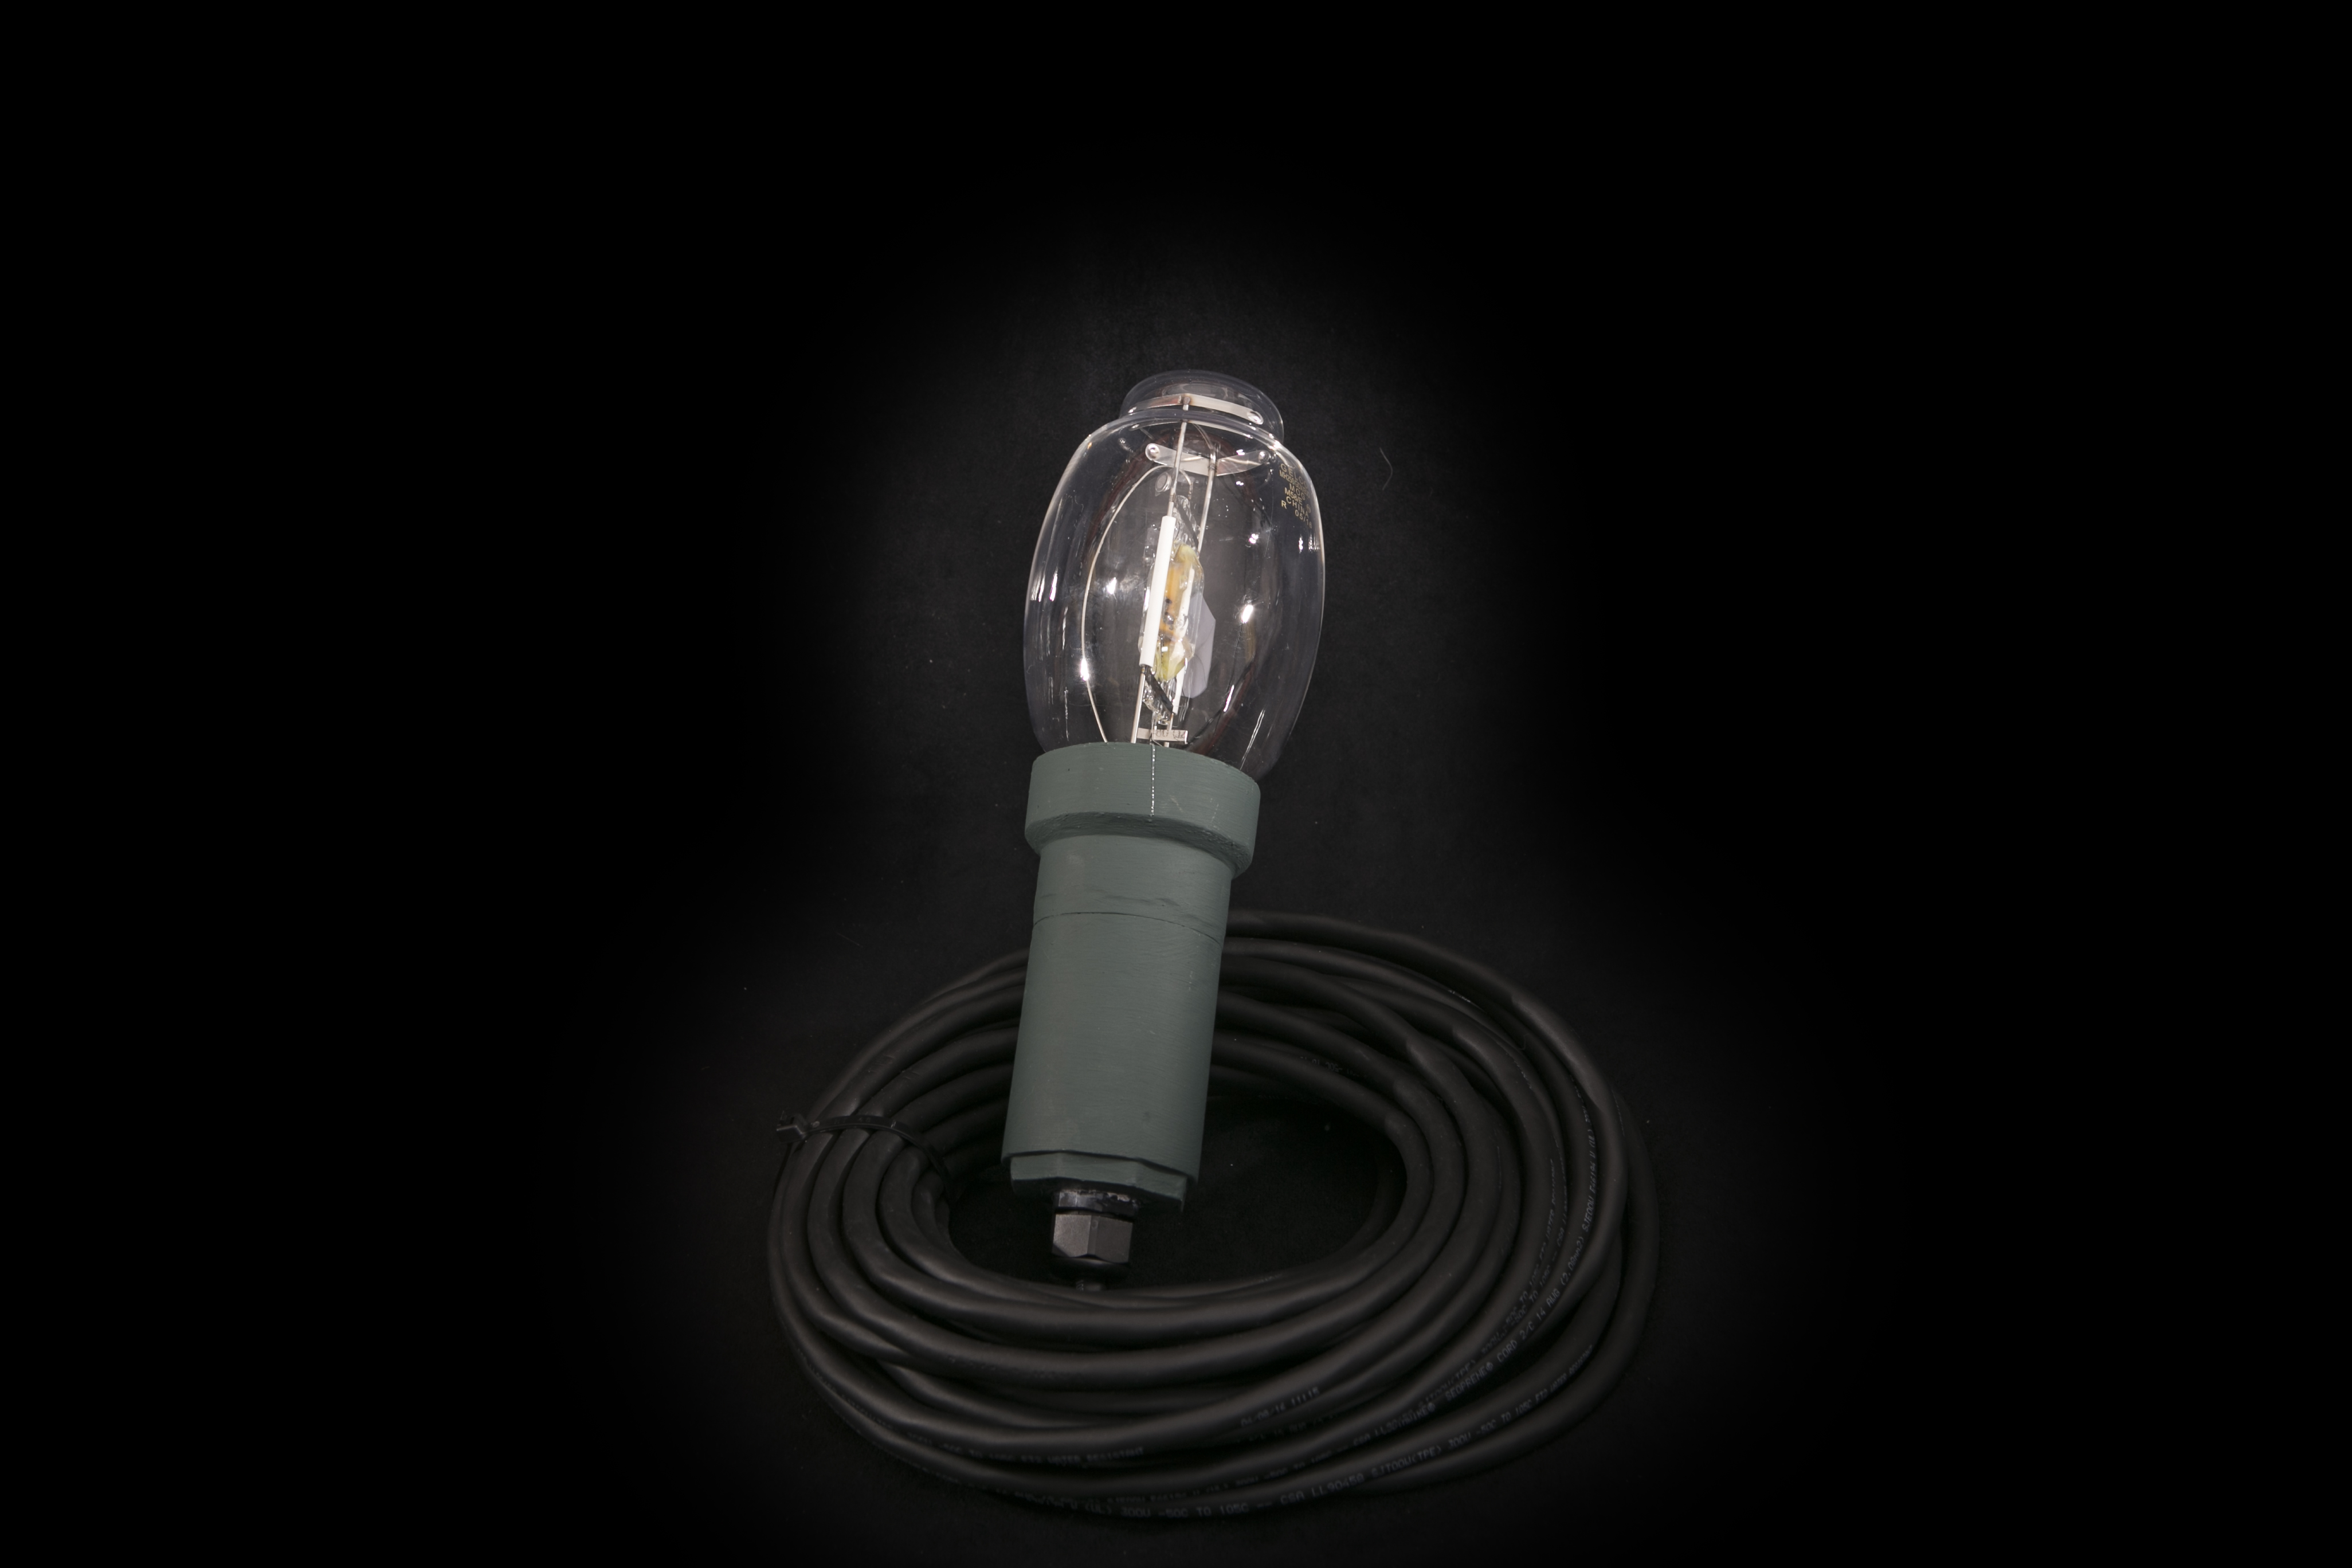 Extra Bright Replacement Light Assembly Underwater Fish